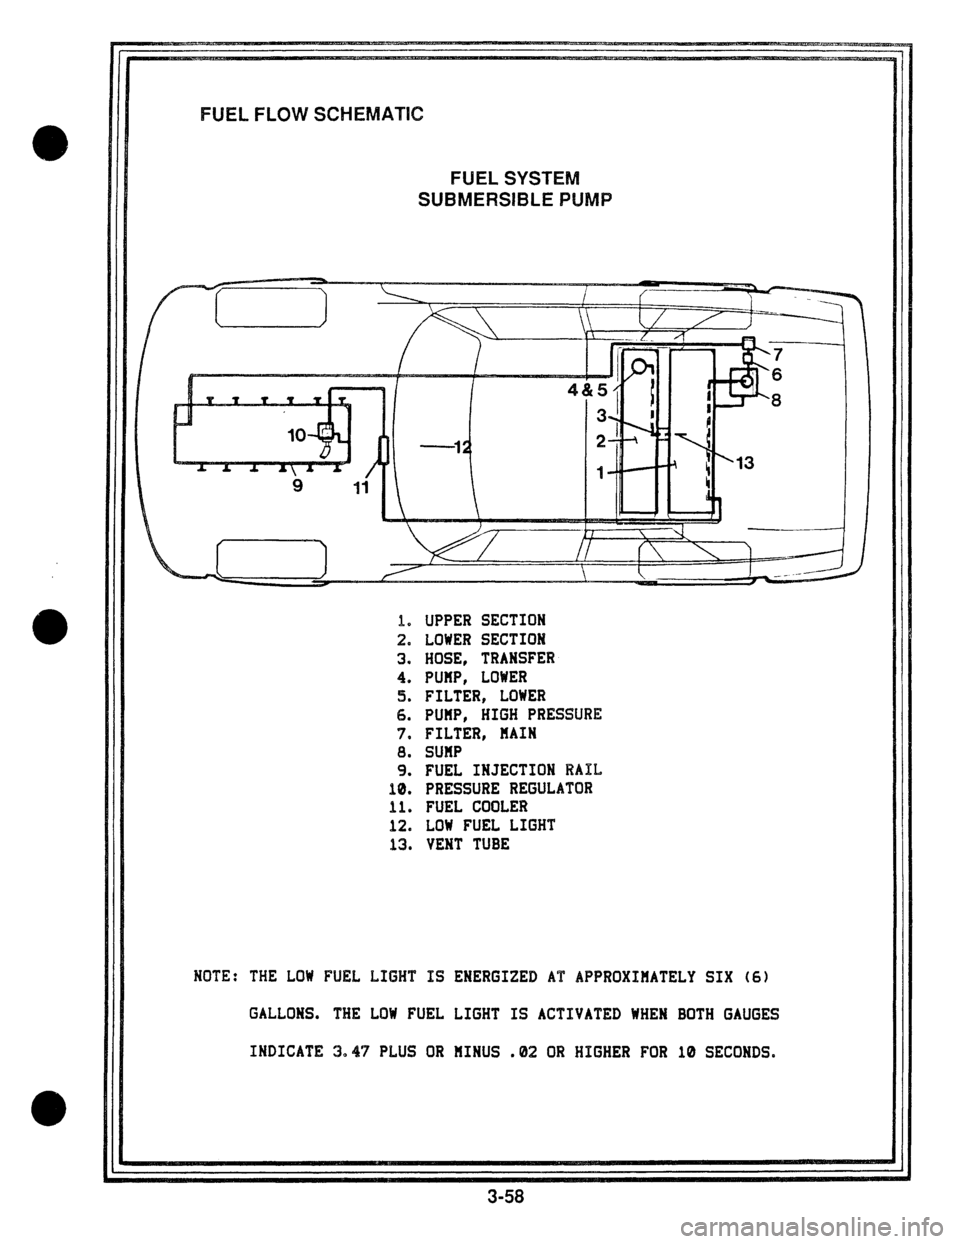 Jaguar Xjs V12 Fuel System Diagram Free Download Wiring Diagram